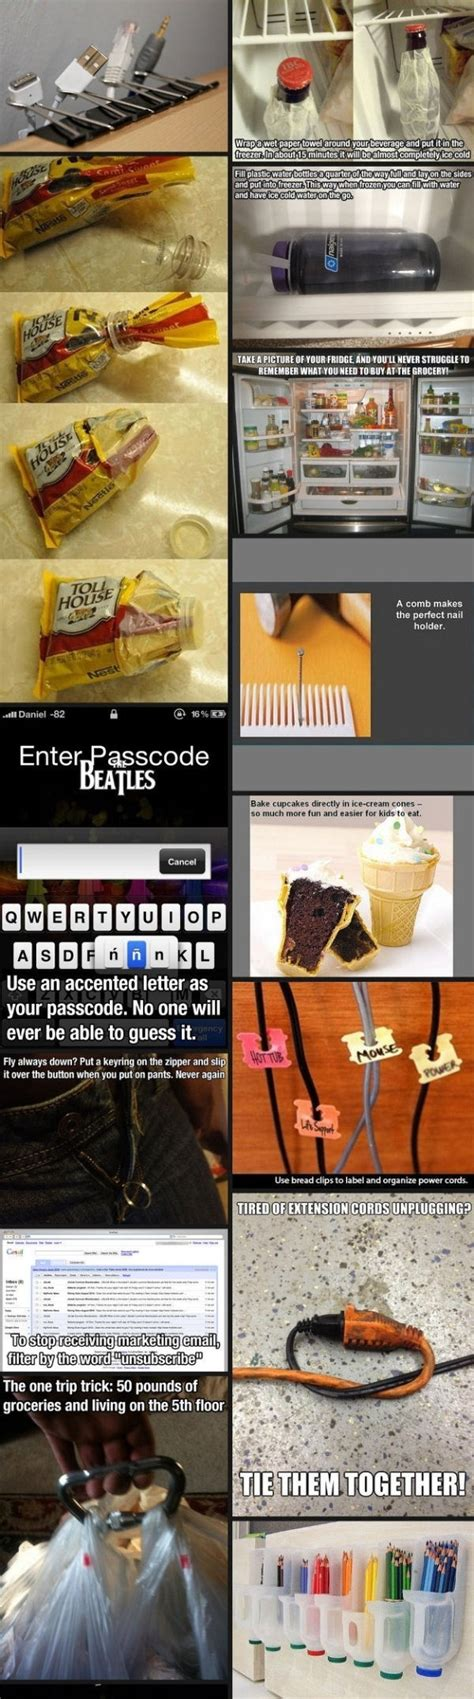 diy life hacks pictures photos and images for facebook